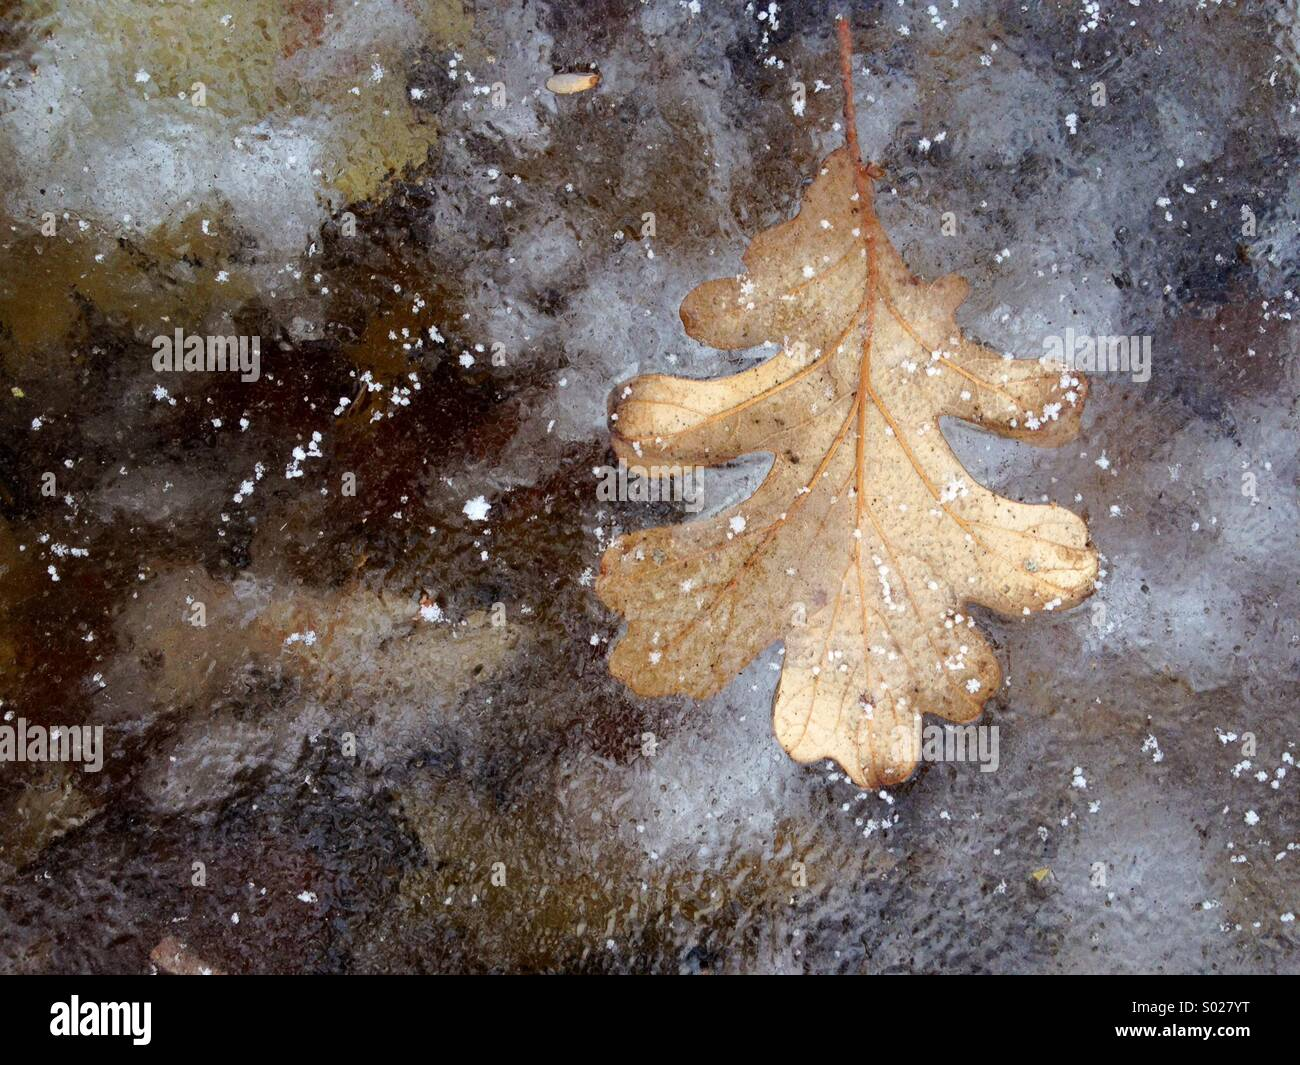 December morning first snow fall on frozen pond - Stock Image